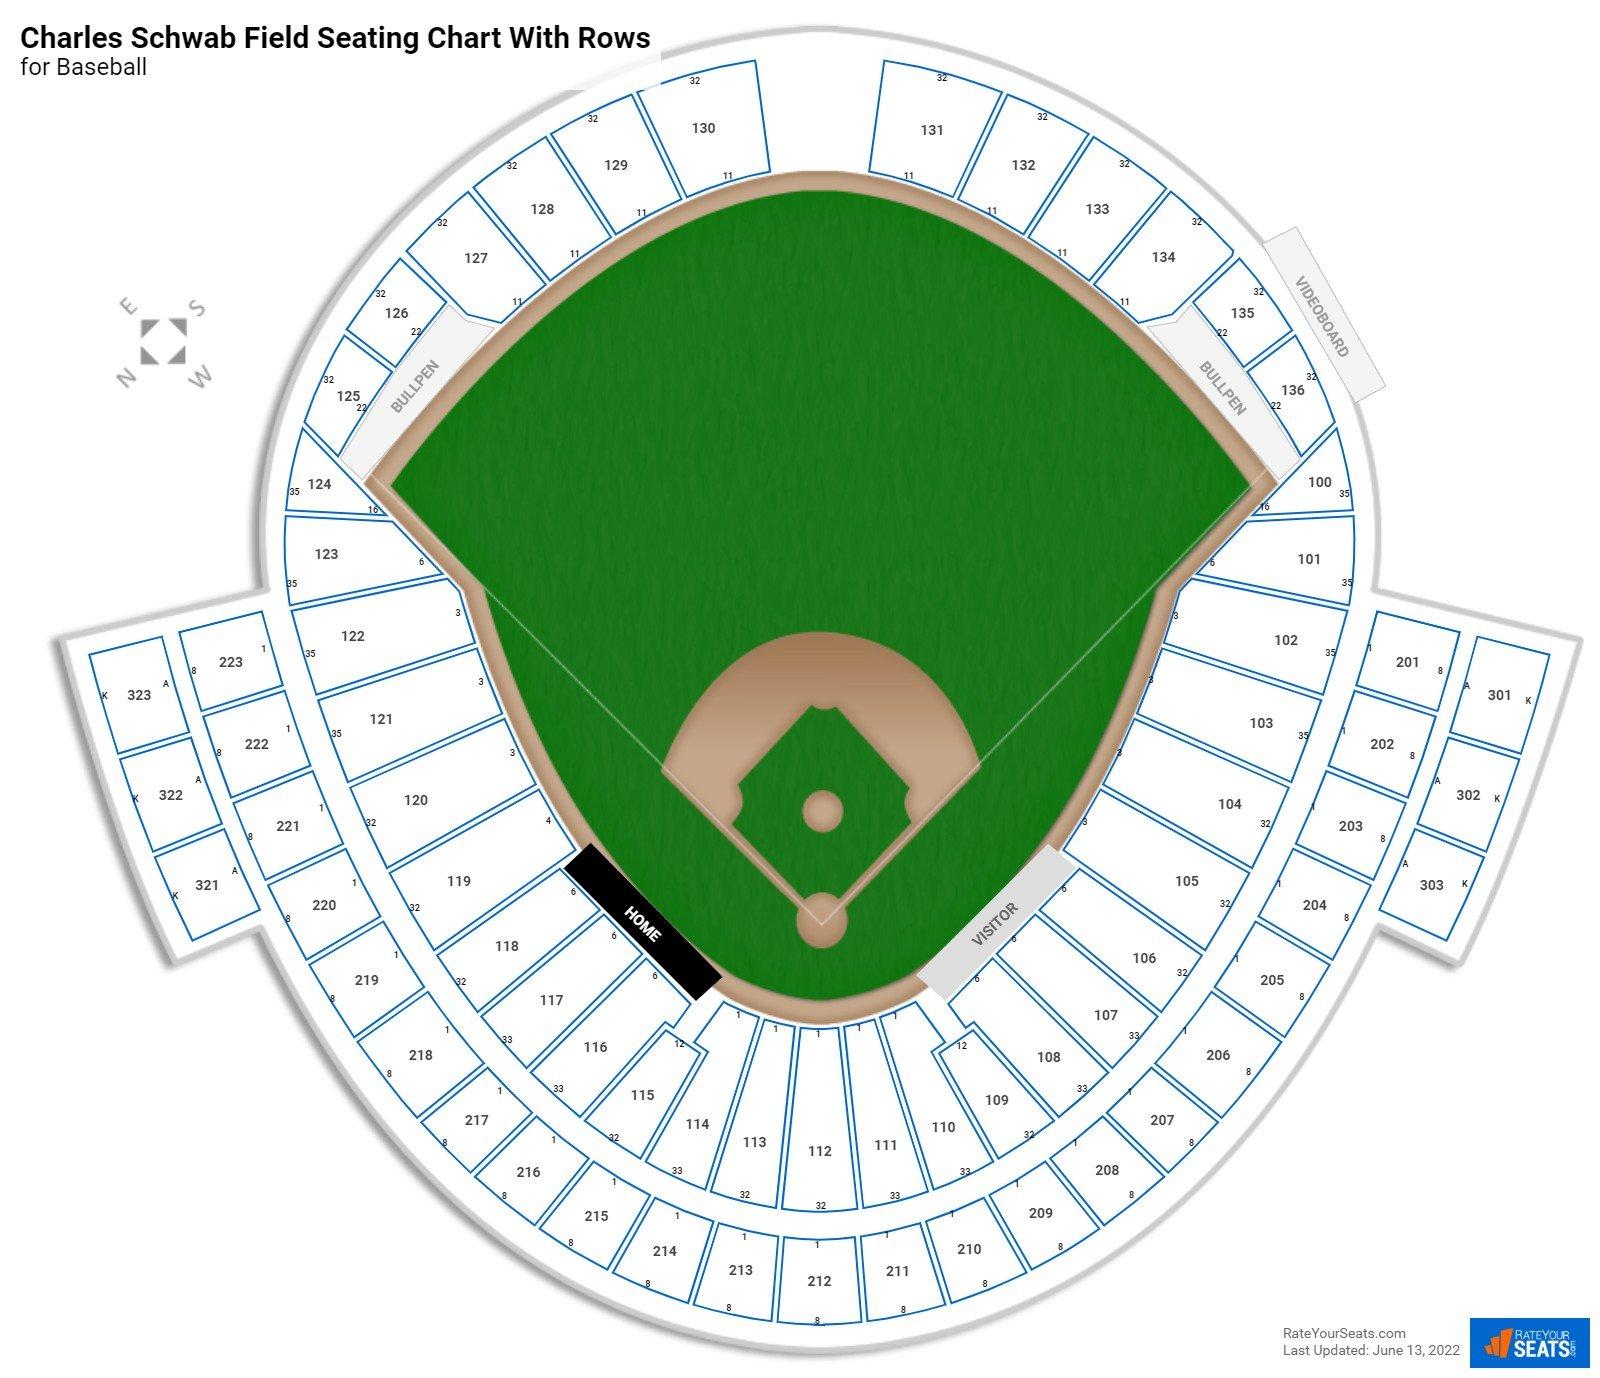 TD Ameritrade Park seating chart with rows